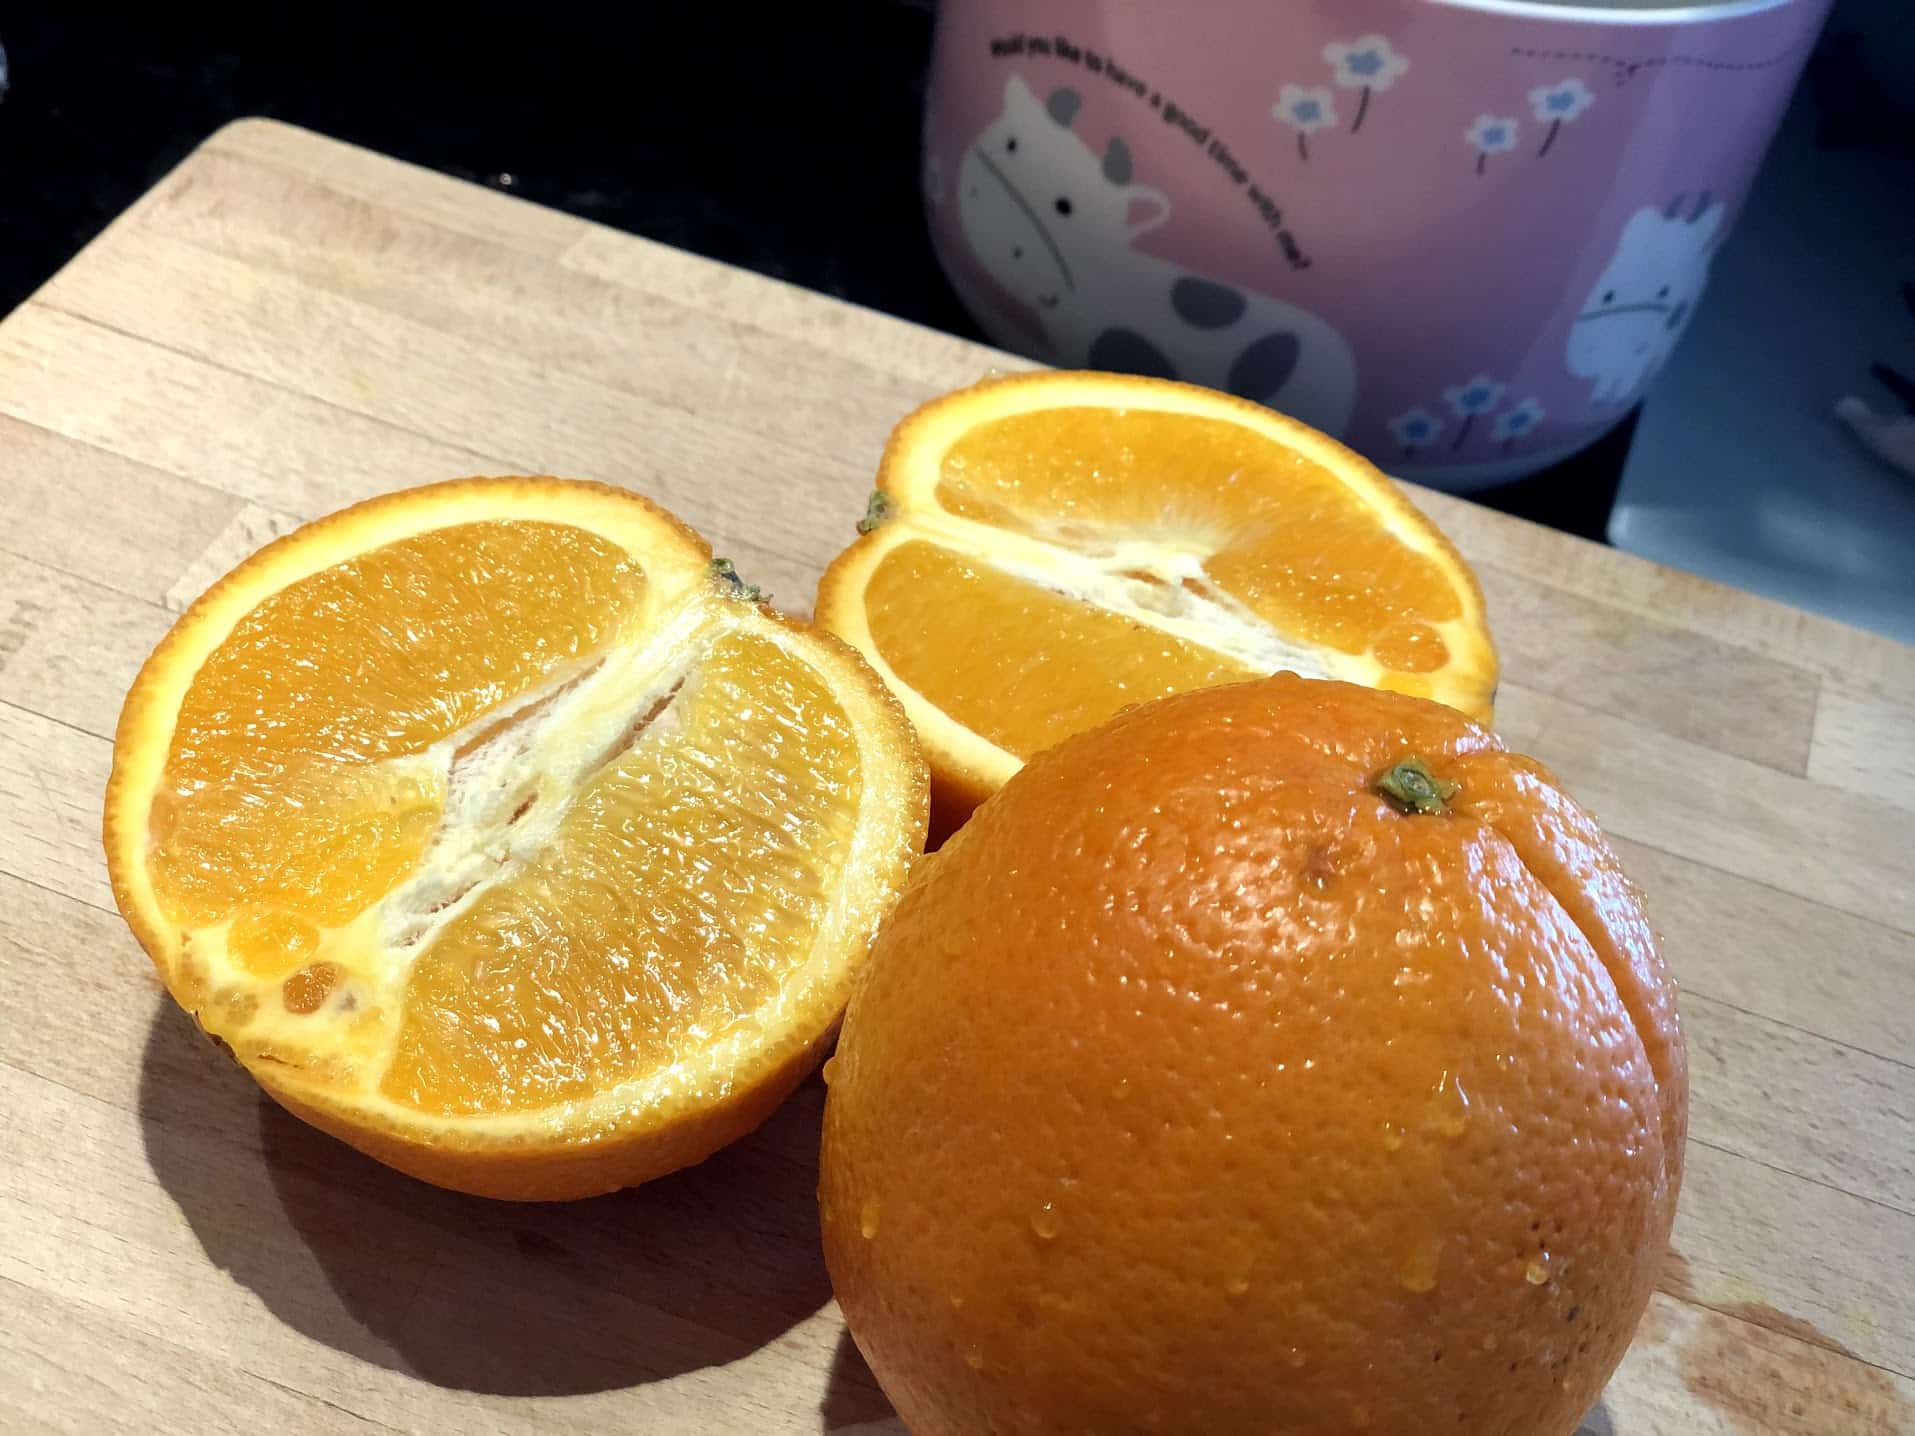 Eating oranges is not the same as taking vitamin C pills on Winning Alopecia